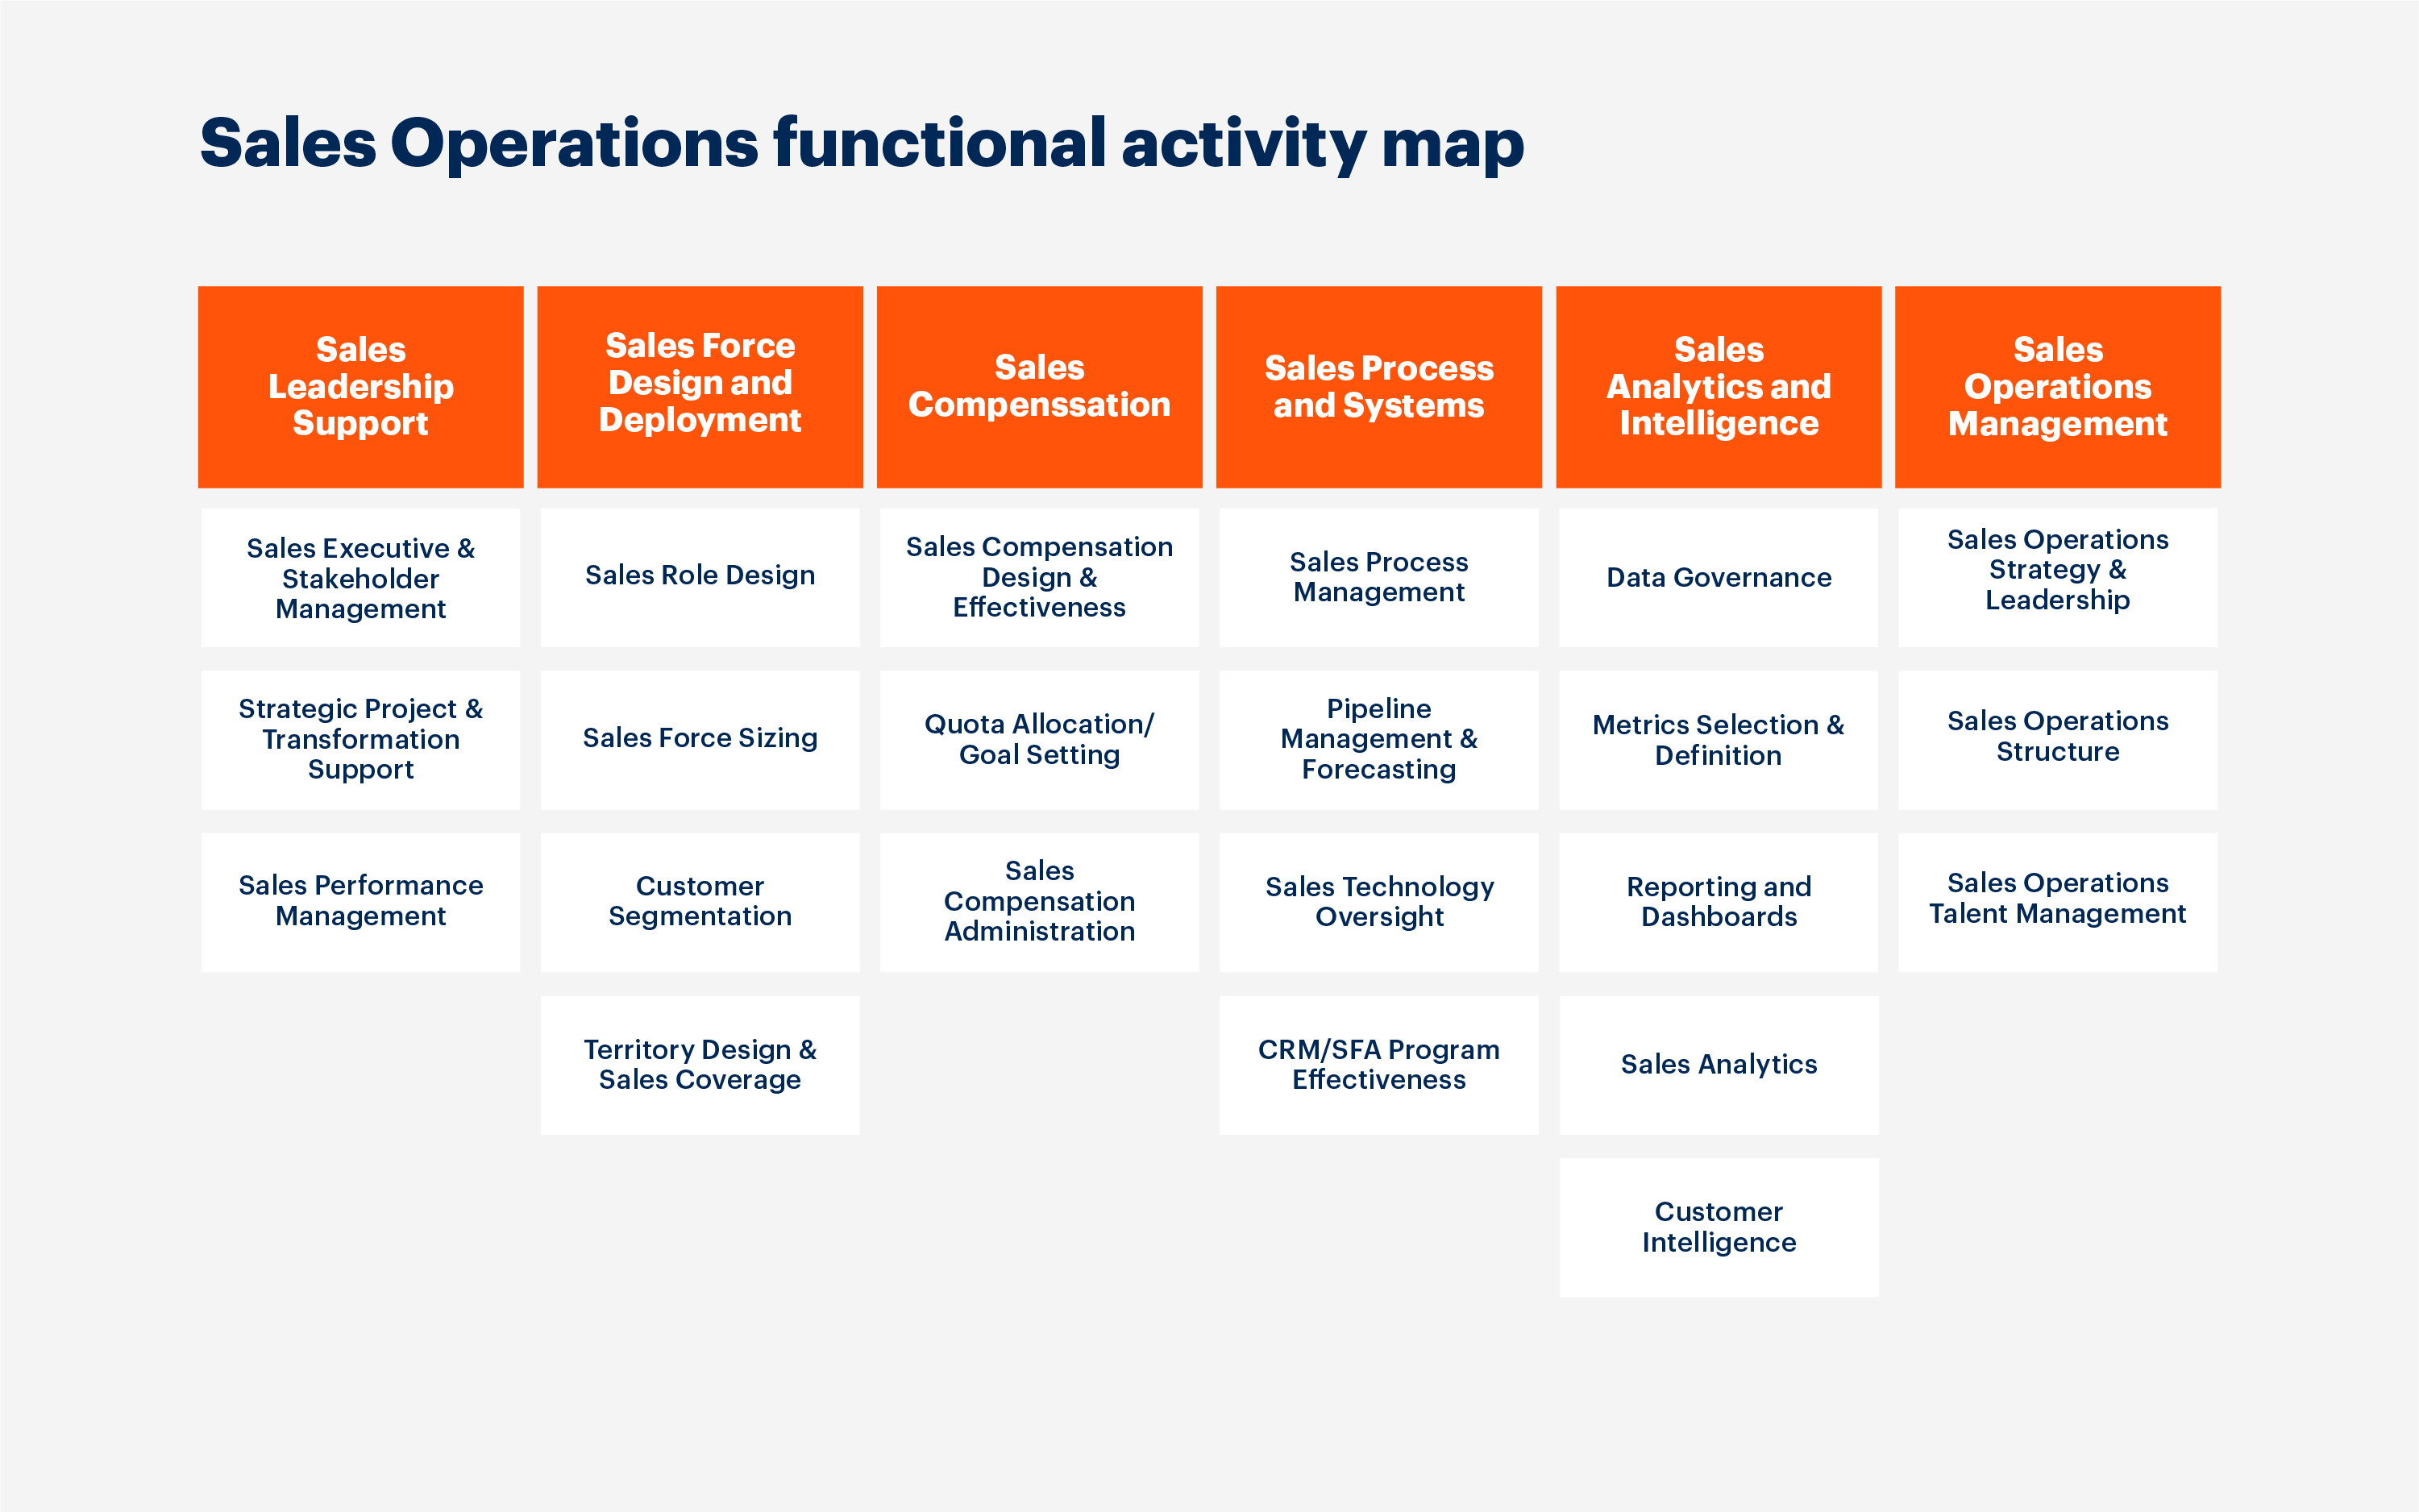 Sales Operations functional activity map.